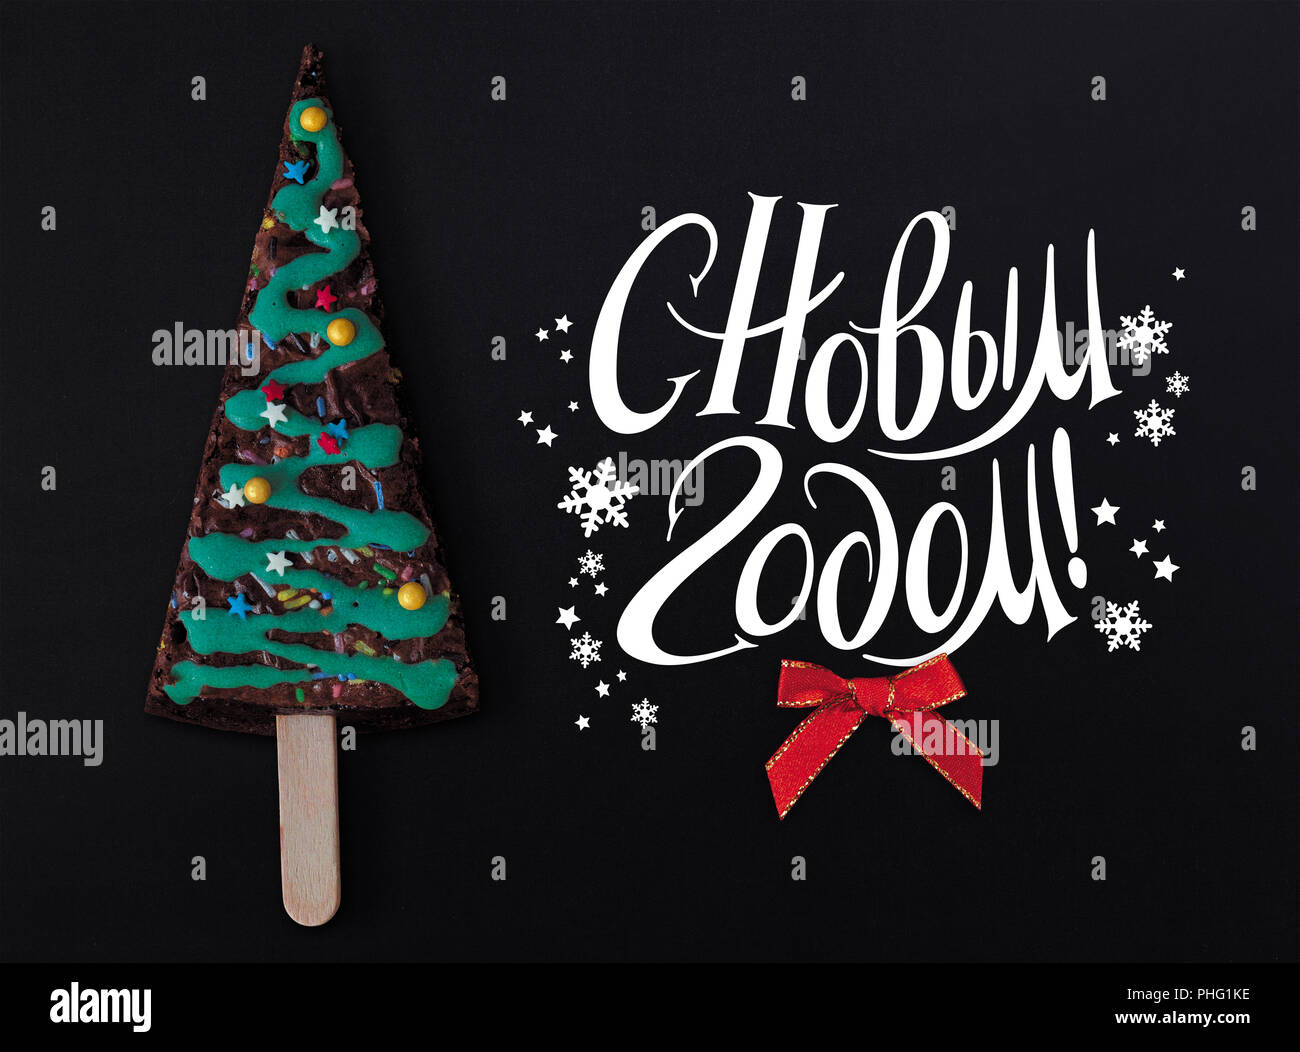 christmas tree cake on a black background and wishes a happy new year in russian